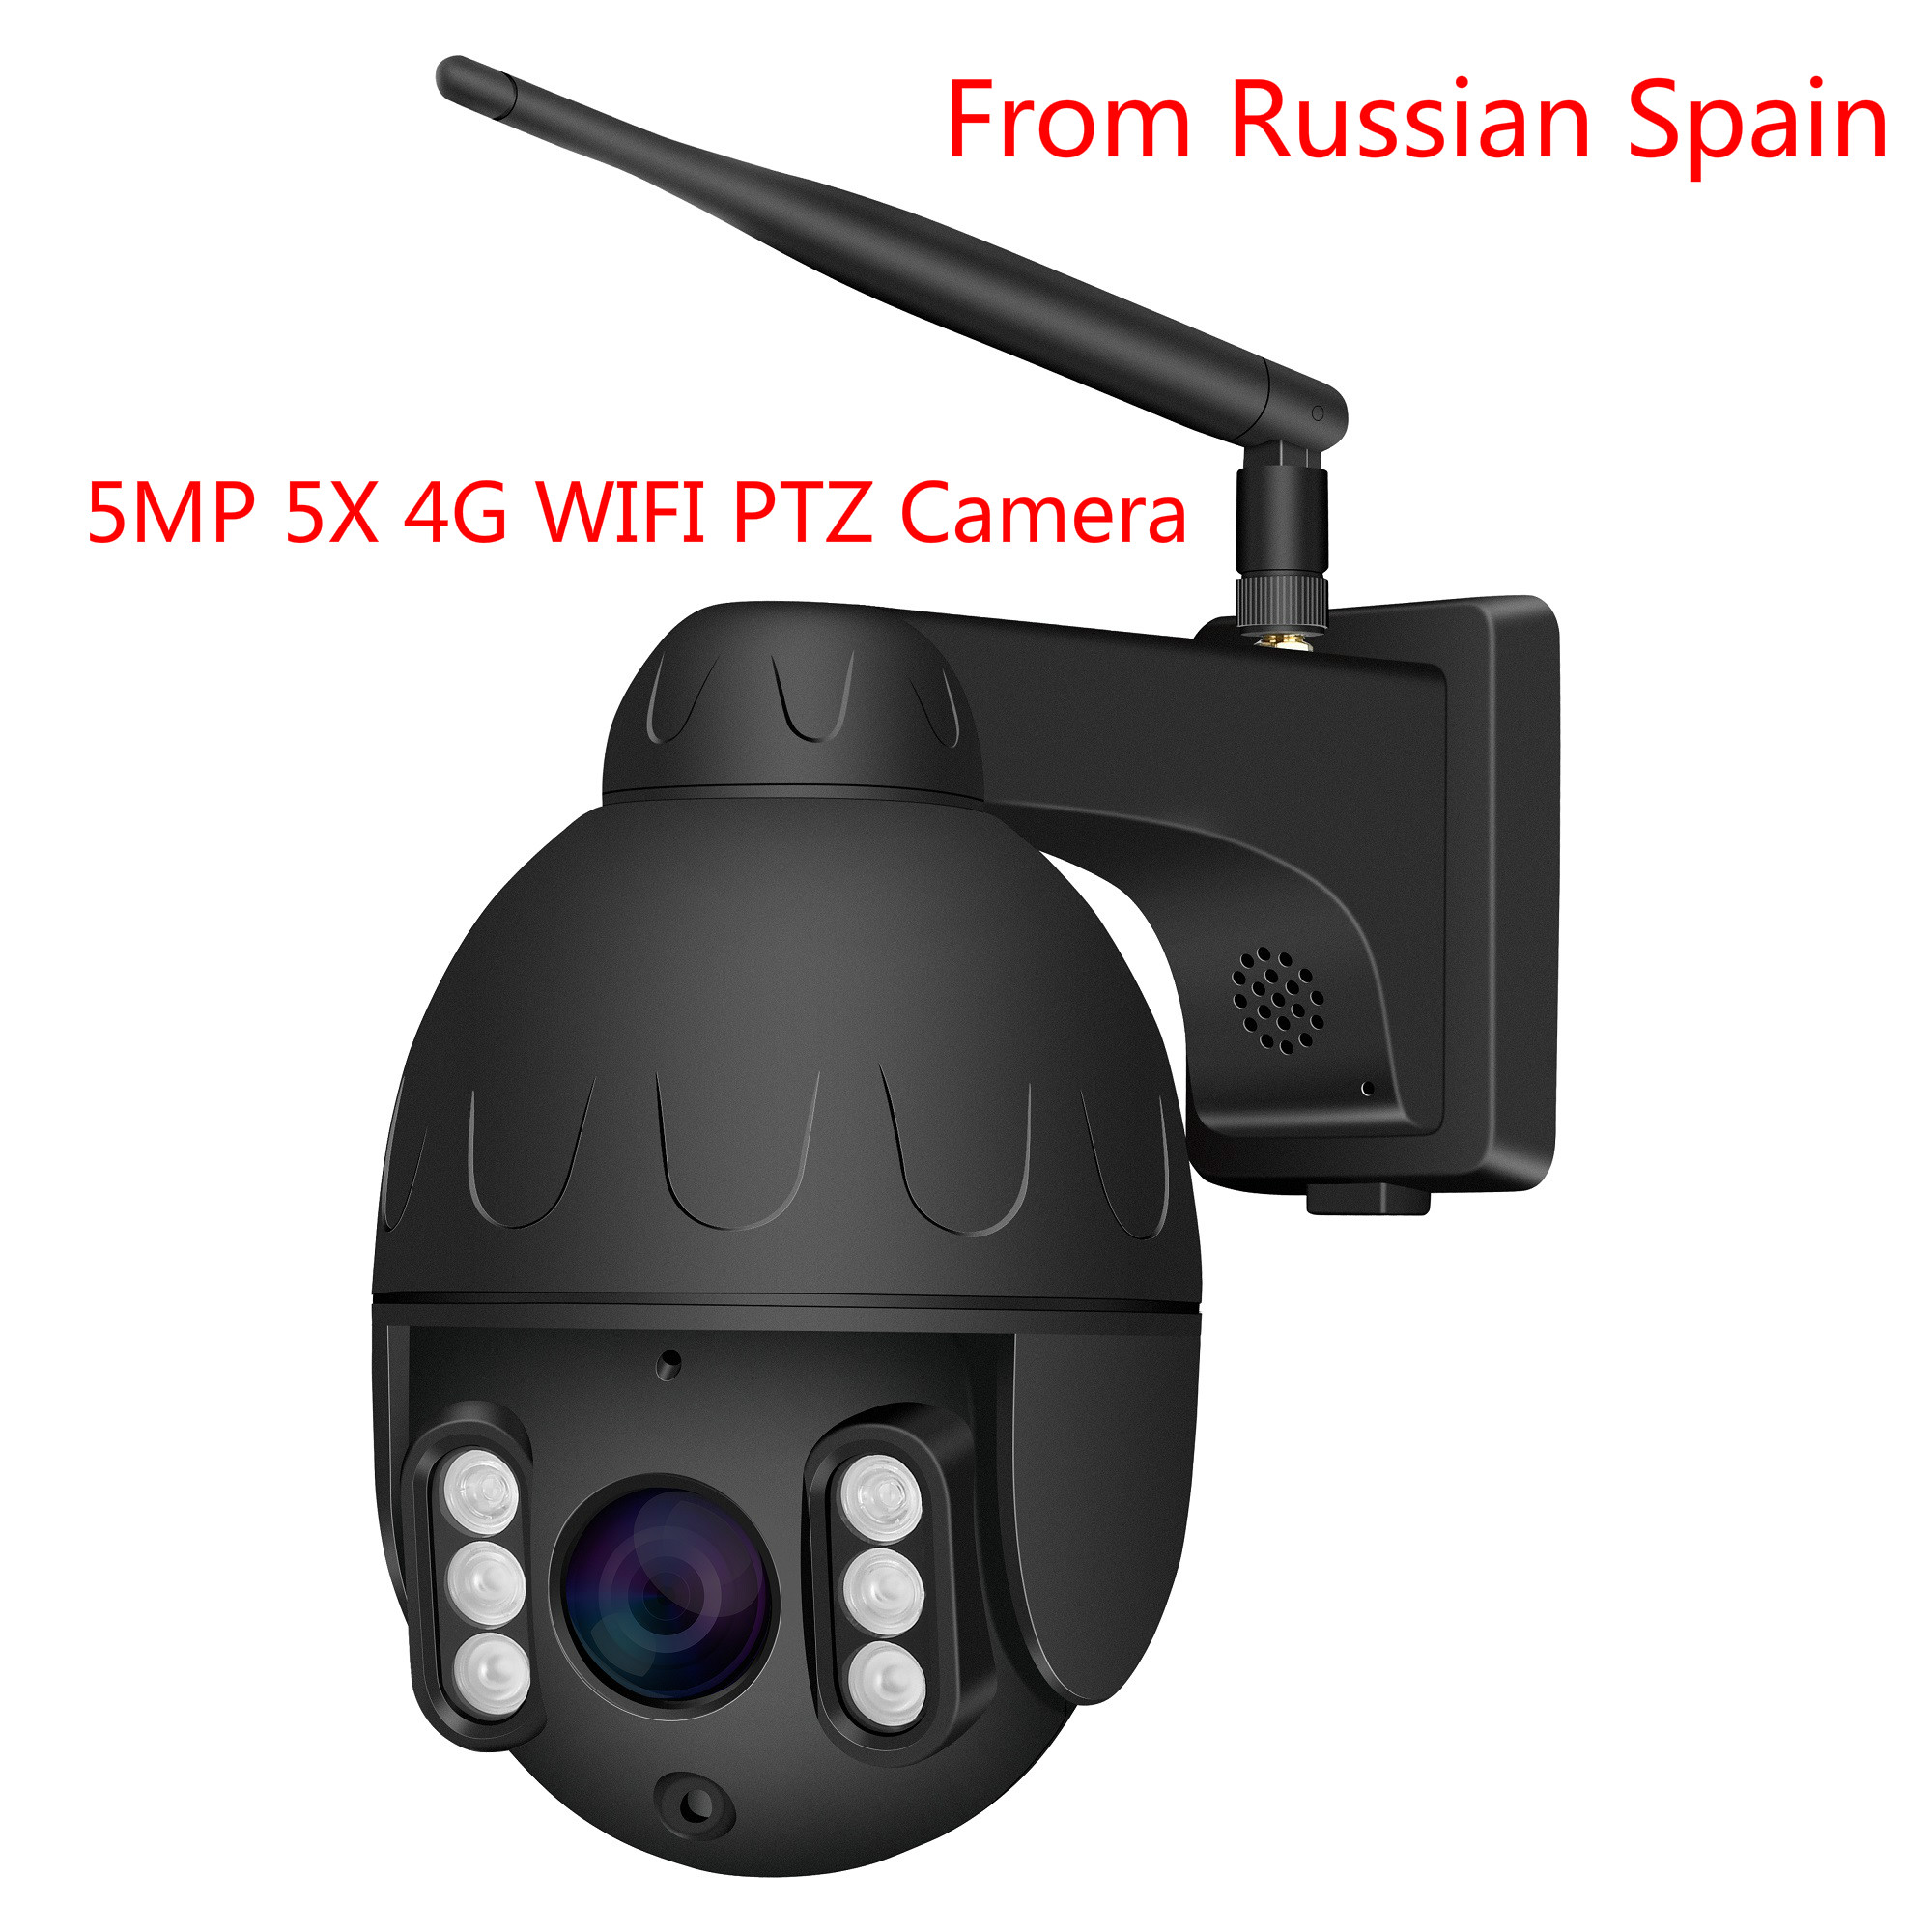 P2P 4g Wifi IP Camera 5MP Human Recognition Onvif 4g Wireless 2.7-13.5mm 5x Zoom IP PTZ Cameras 5MP Speed Dome  Camera